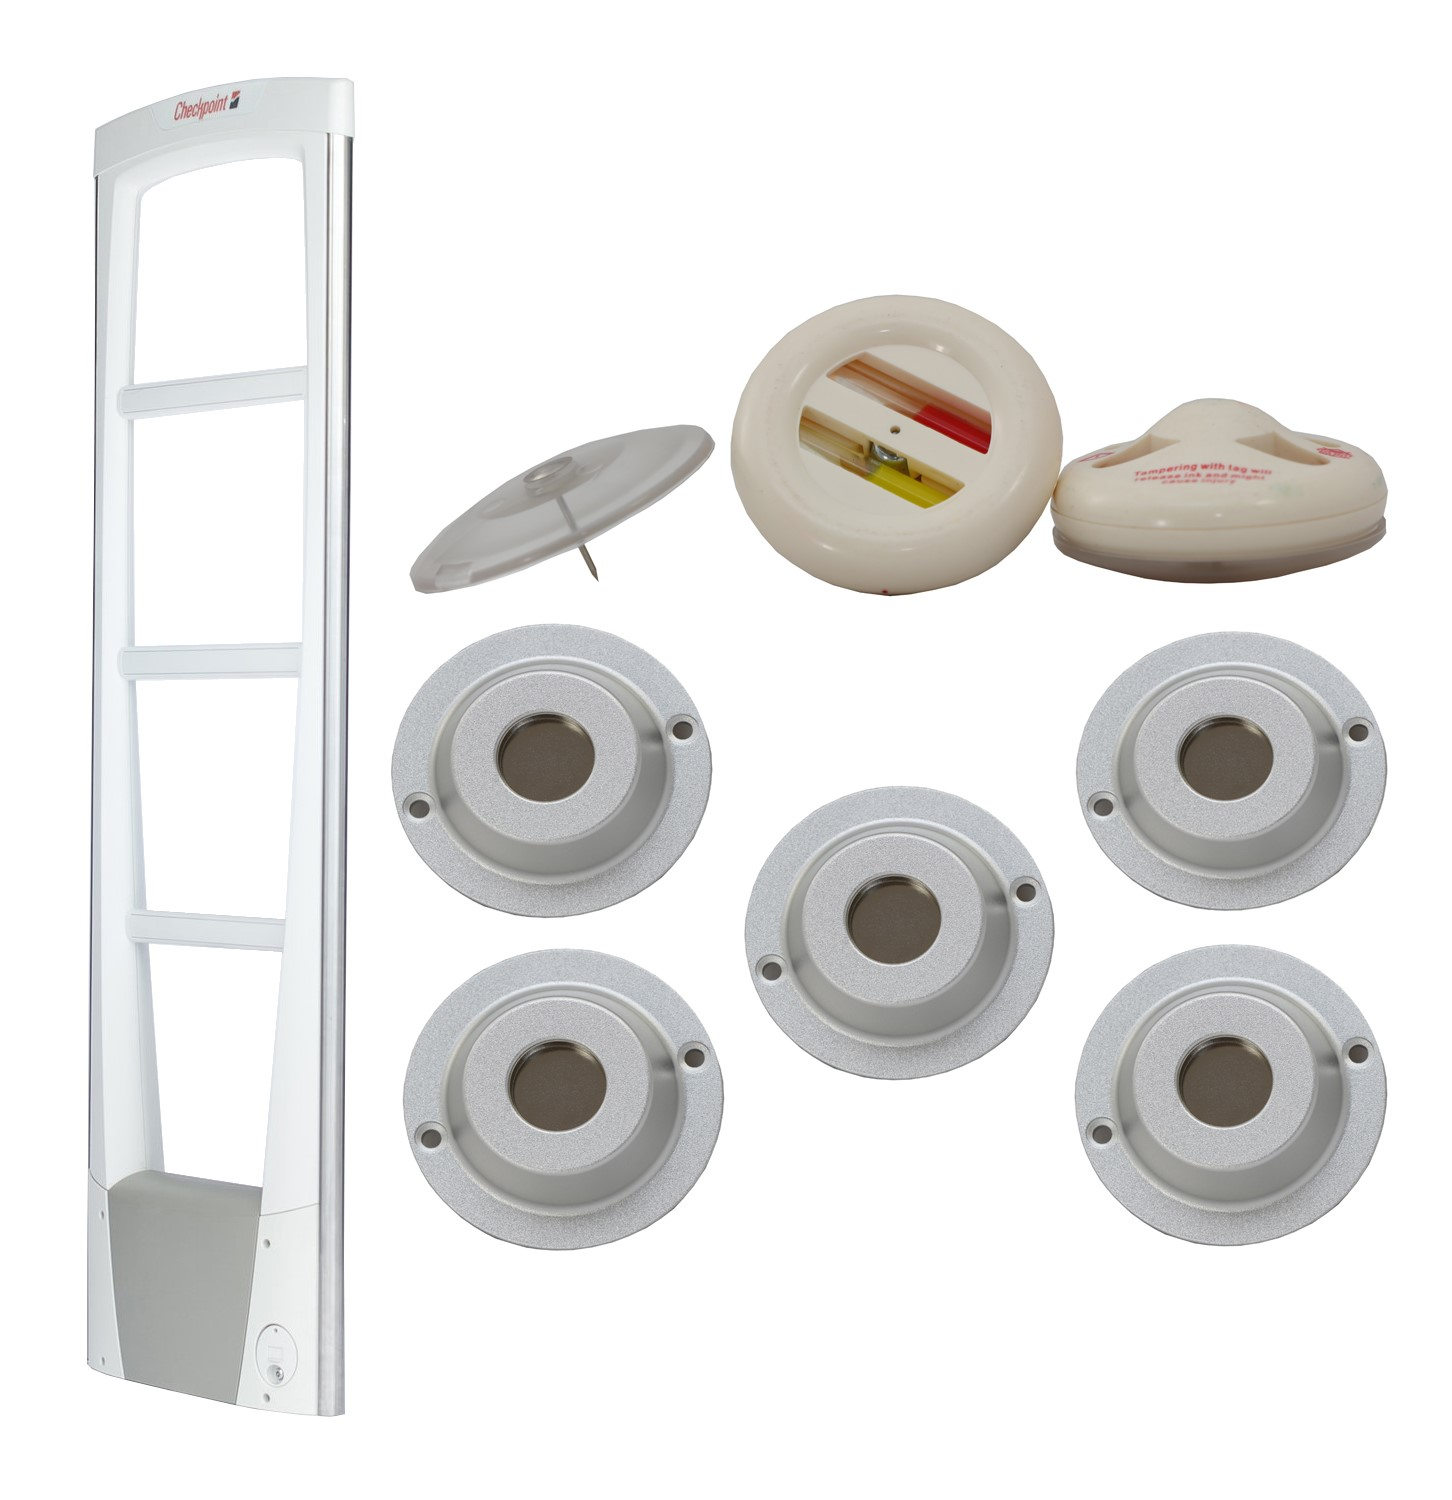 3 Foot Door Retail Security Tag Package - CQP1203E